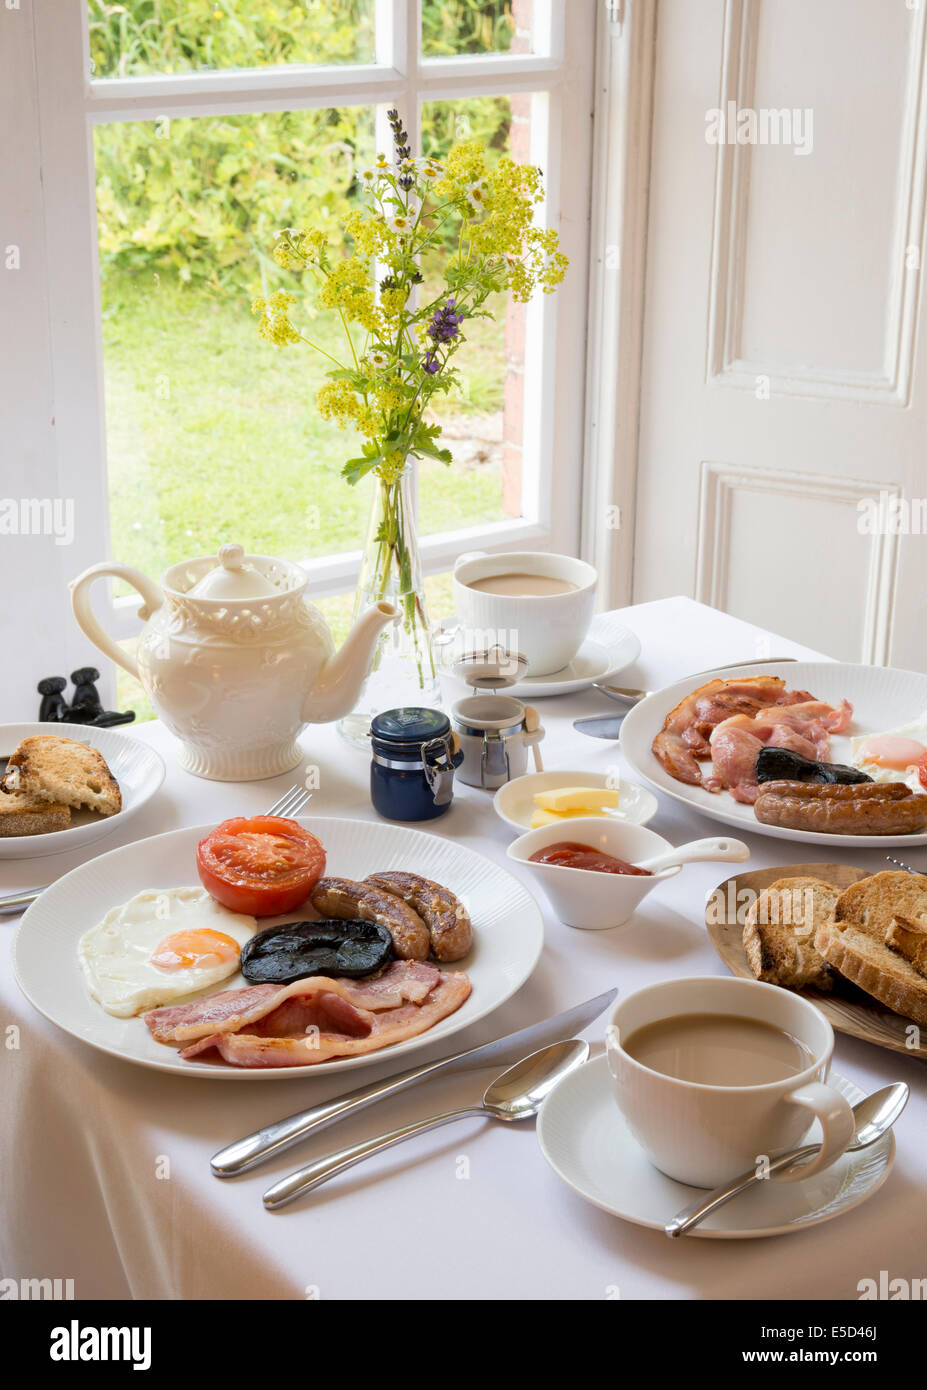 Traditional English Breakfast table laid out by window room interior with tea toasts bacon sausage and egg on tablecloth - Stock Image